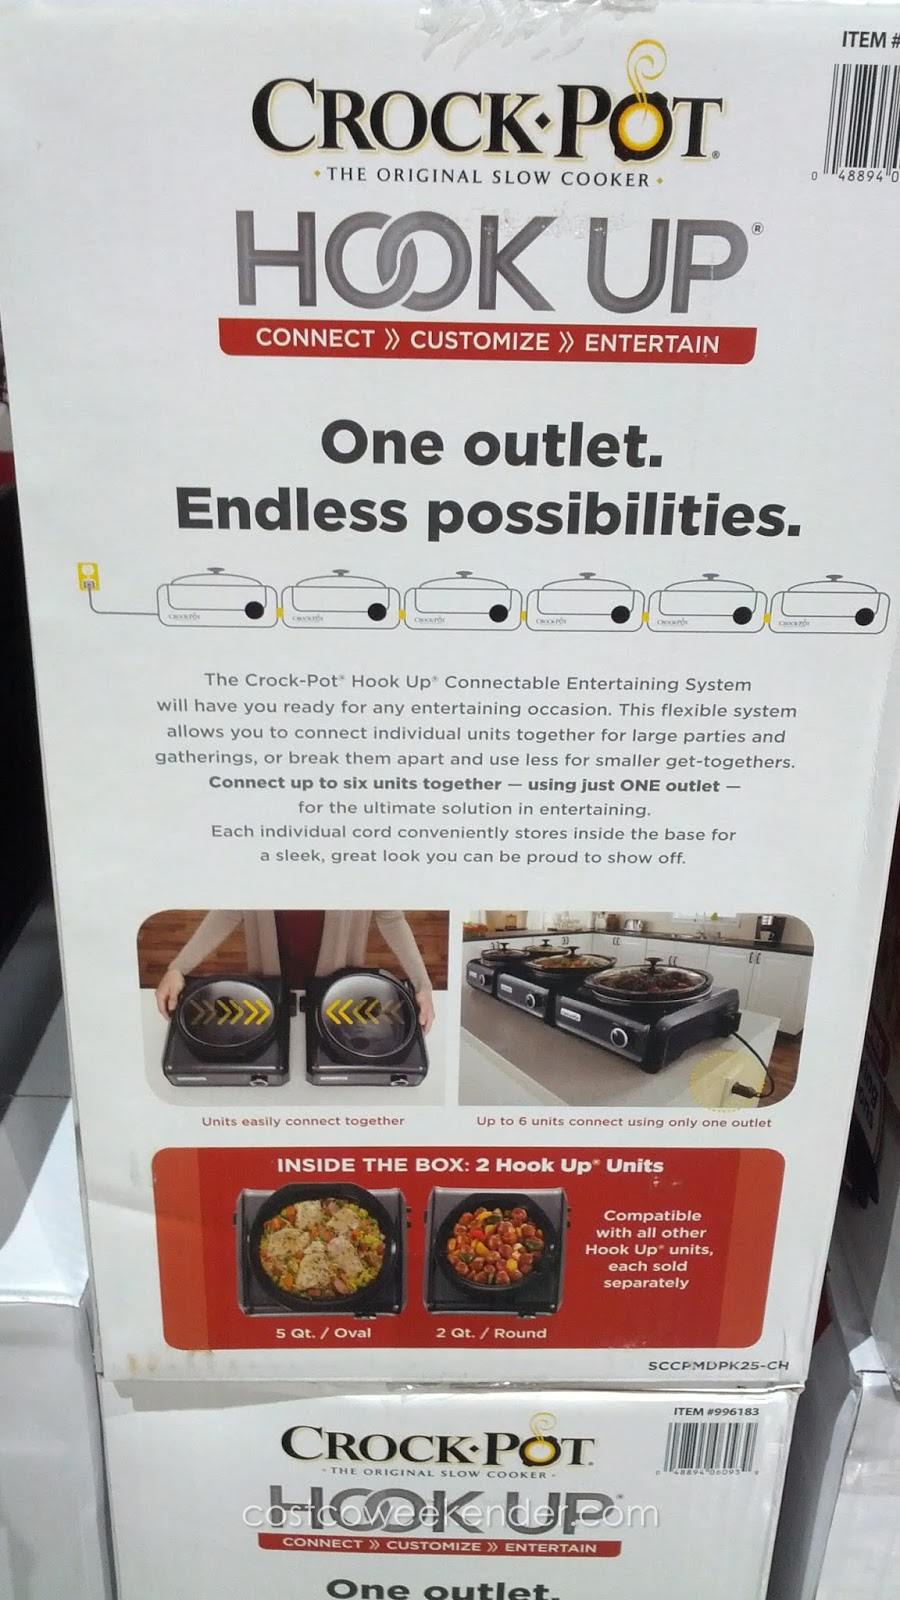 Crock Pot Hook Up Connectable Entertaining System Both Cooks And Warms